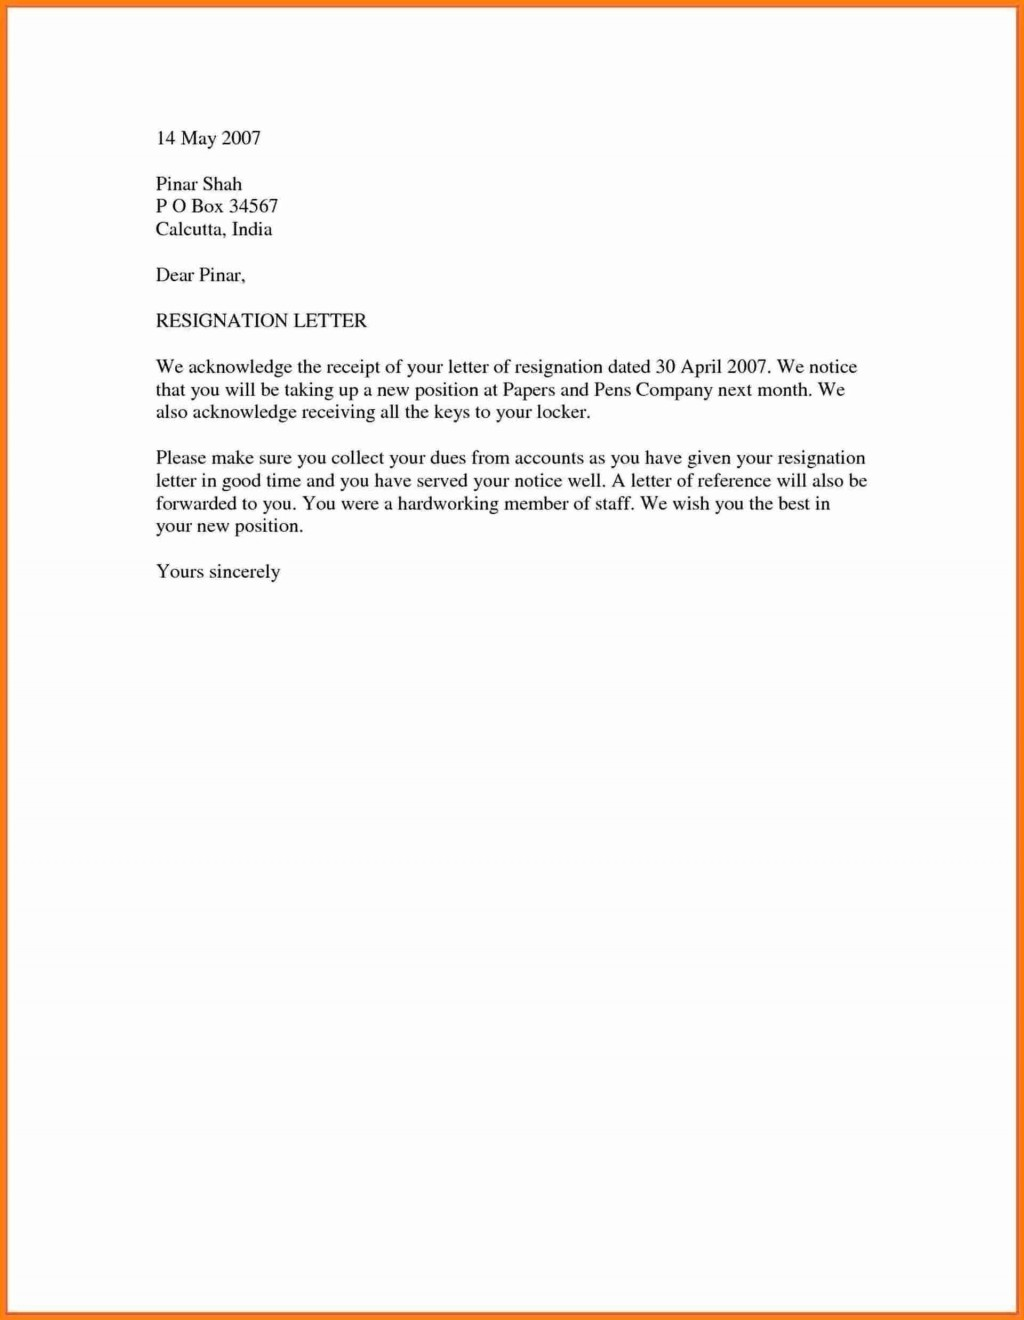 007 Astounding Resignation Letter Template Word Highest Clarity  Malaysia UkLarge